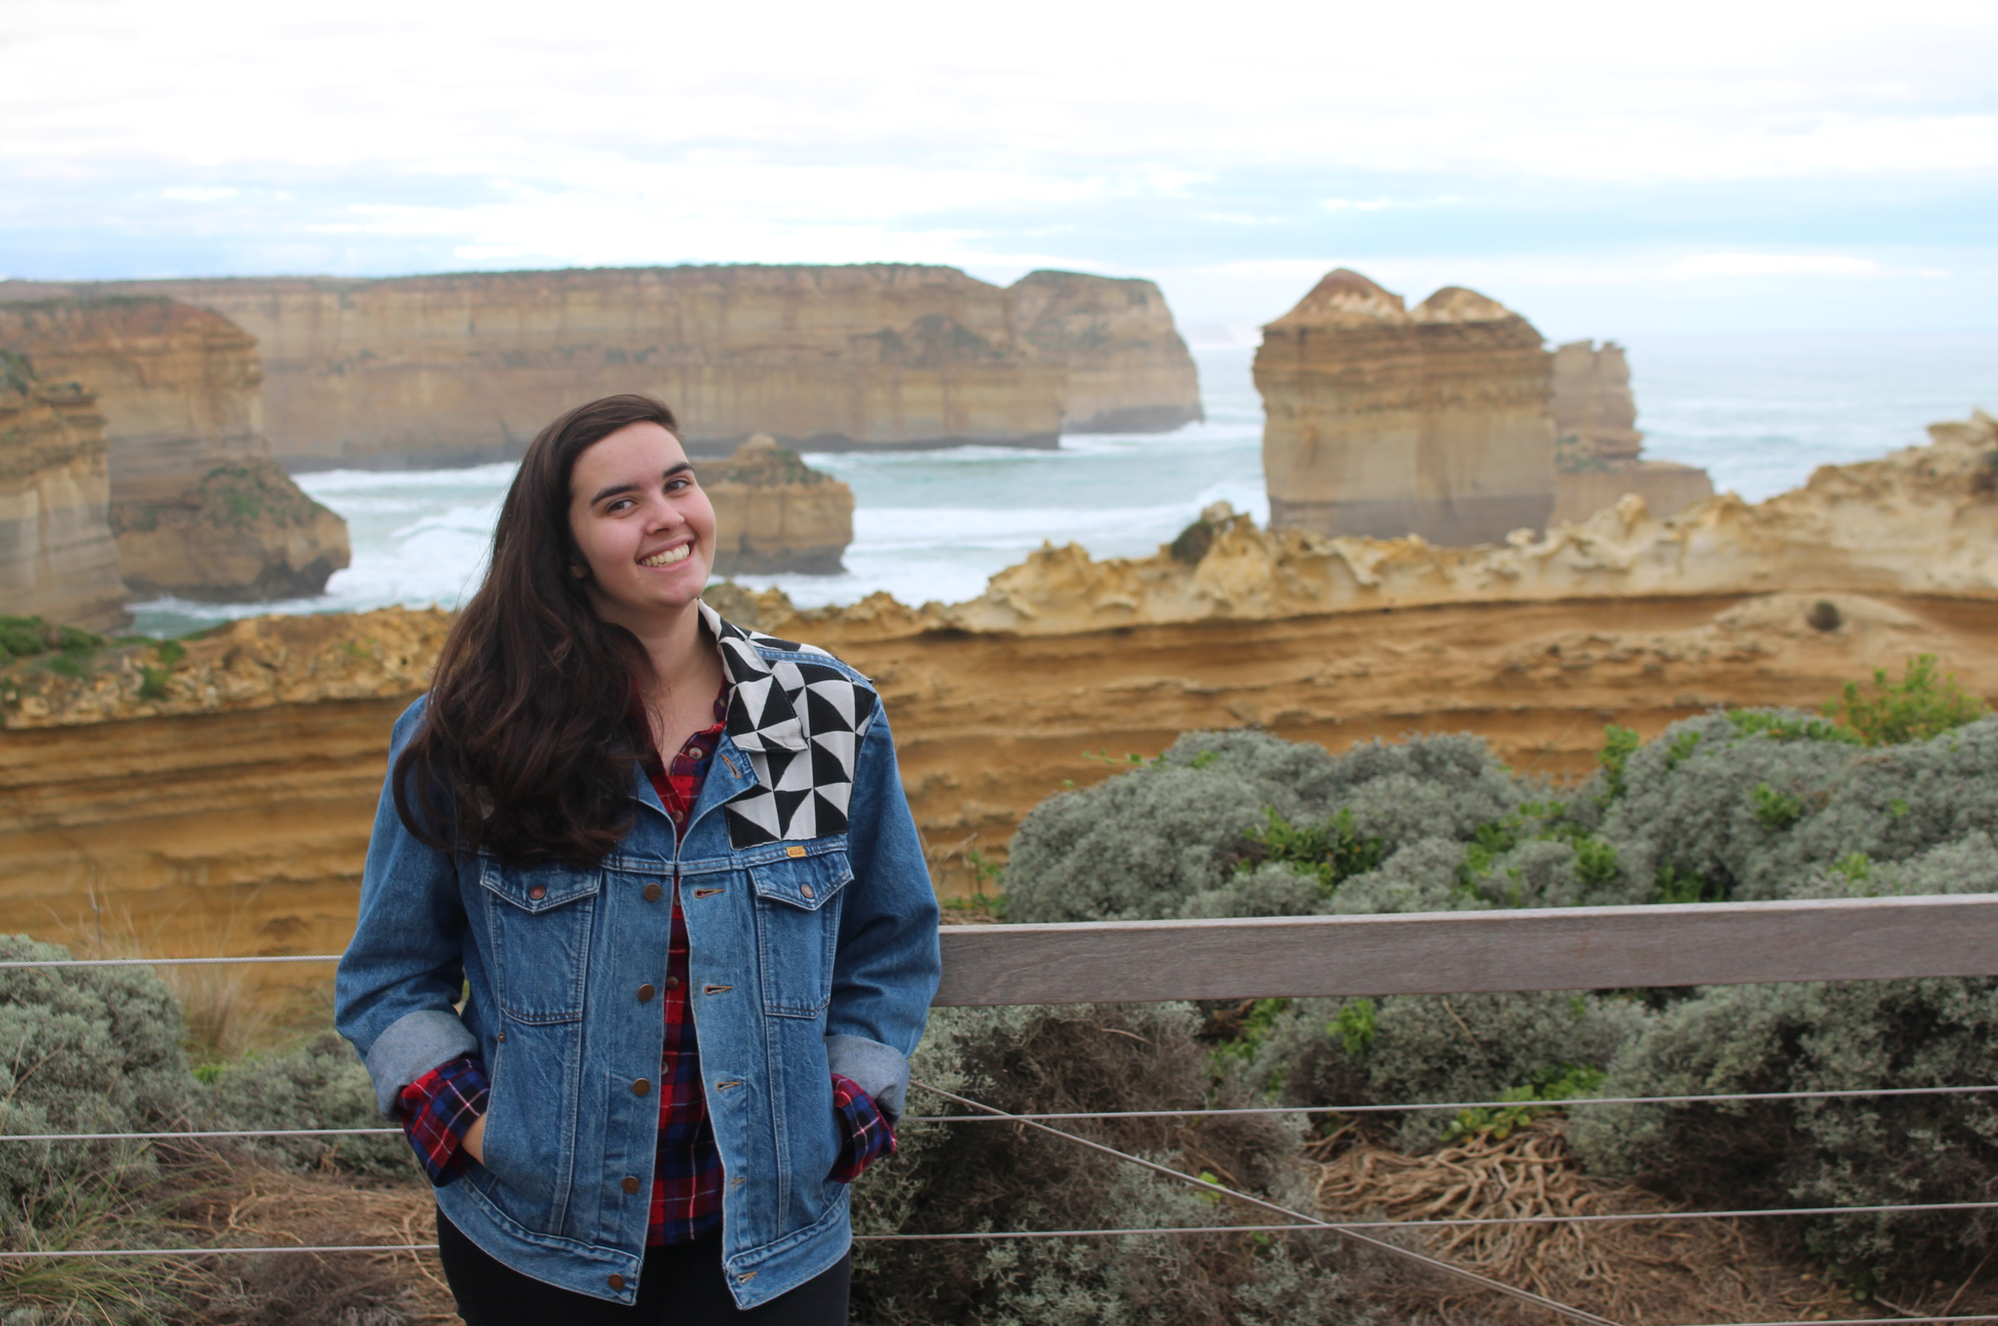 Beth standing in front of cliffs and the ocean in Australia.